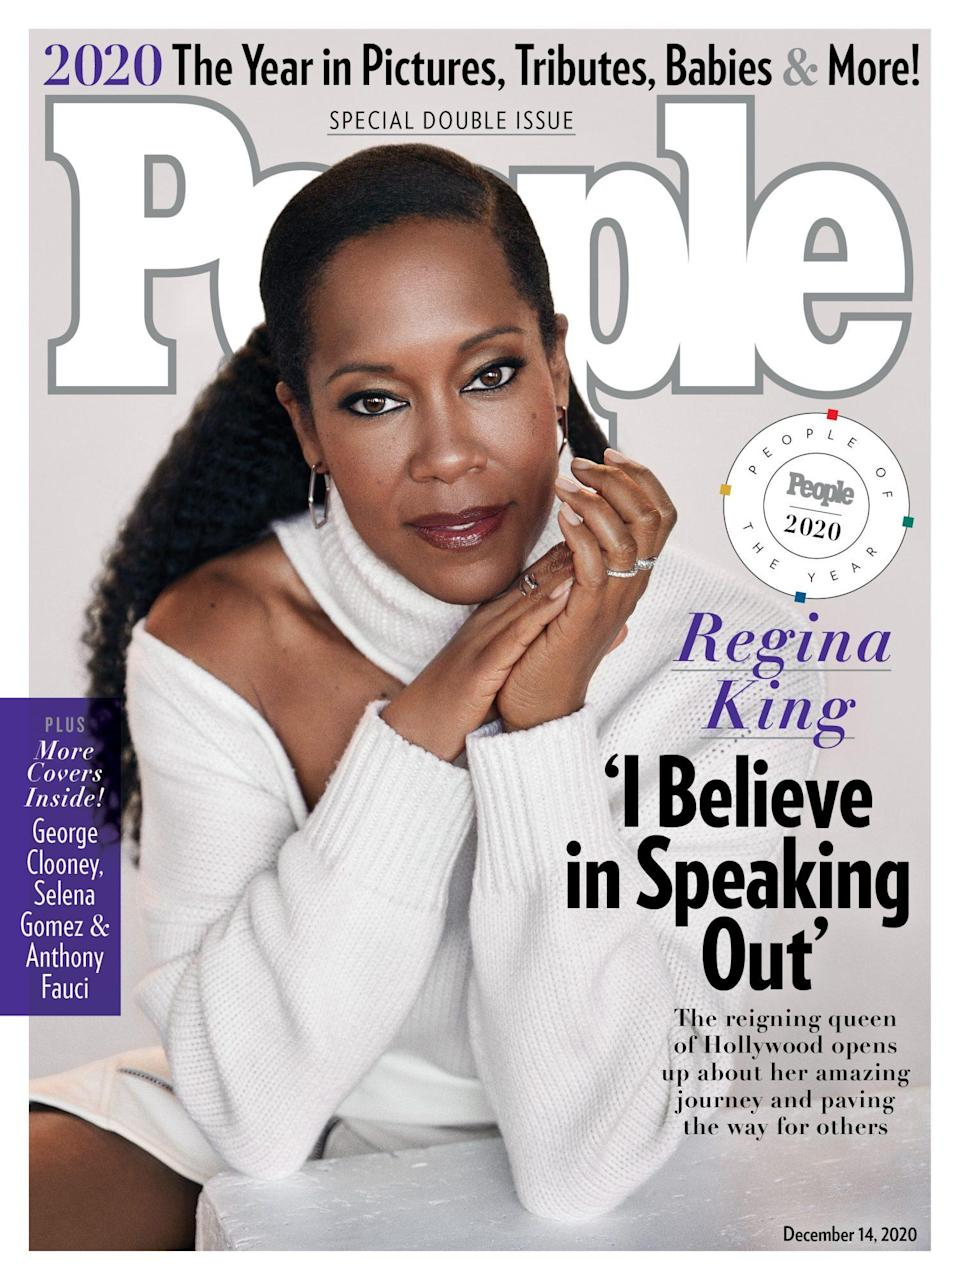 "<p>Watch the full episode of <em><a href=""https://peopletv.com/video/people-of-the-year-2020-regina-king"" rel=""nofollow noopener"" target=""_blank"" data-ylk=""slk:People of the Year: Regina King"" class=""link rapid-noclick-resp"">People of the Year: Regina King</a> </em>streaming now on PeopleTV.com, or download the PeopleTV app on your favorite device. And pick up PEOPLE's year-end double issue — featuring King's fellow People of the Year George Clooney, Dr. Anthony Fauci and Selena Gomez — on newsstands Friday.</p>"